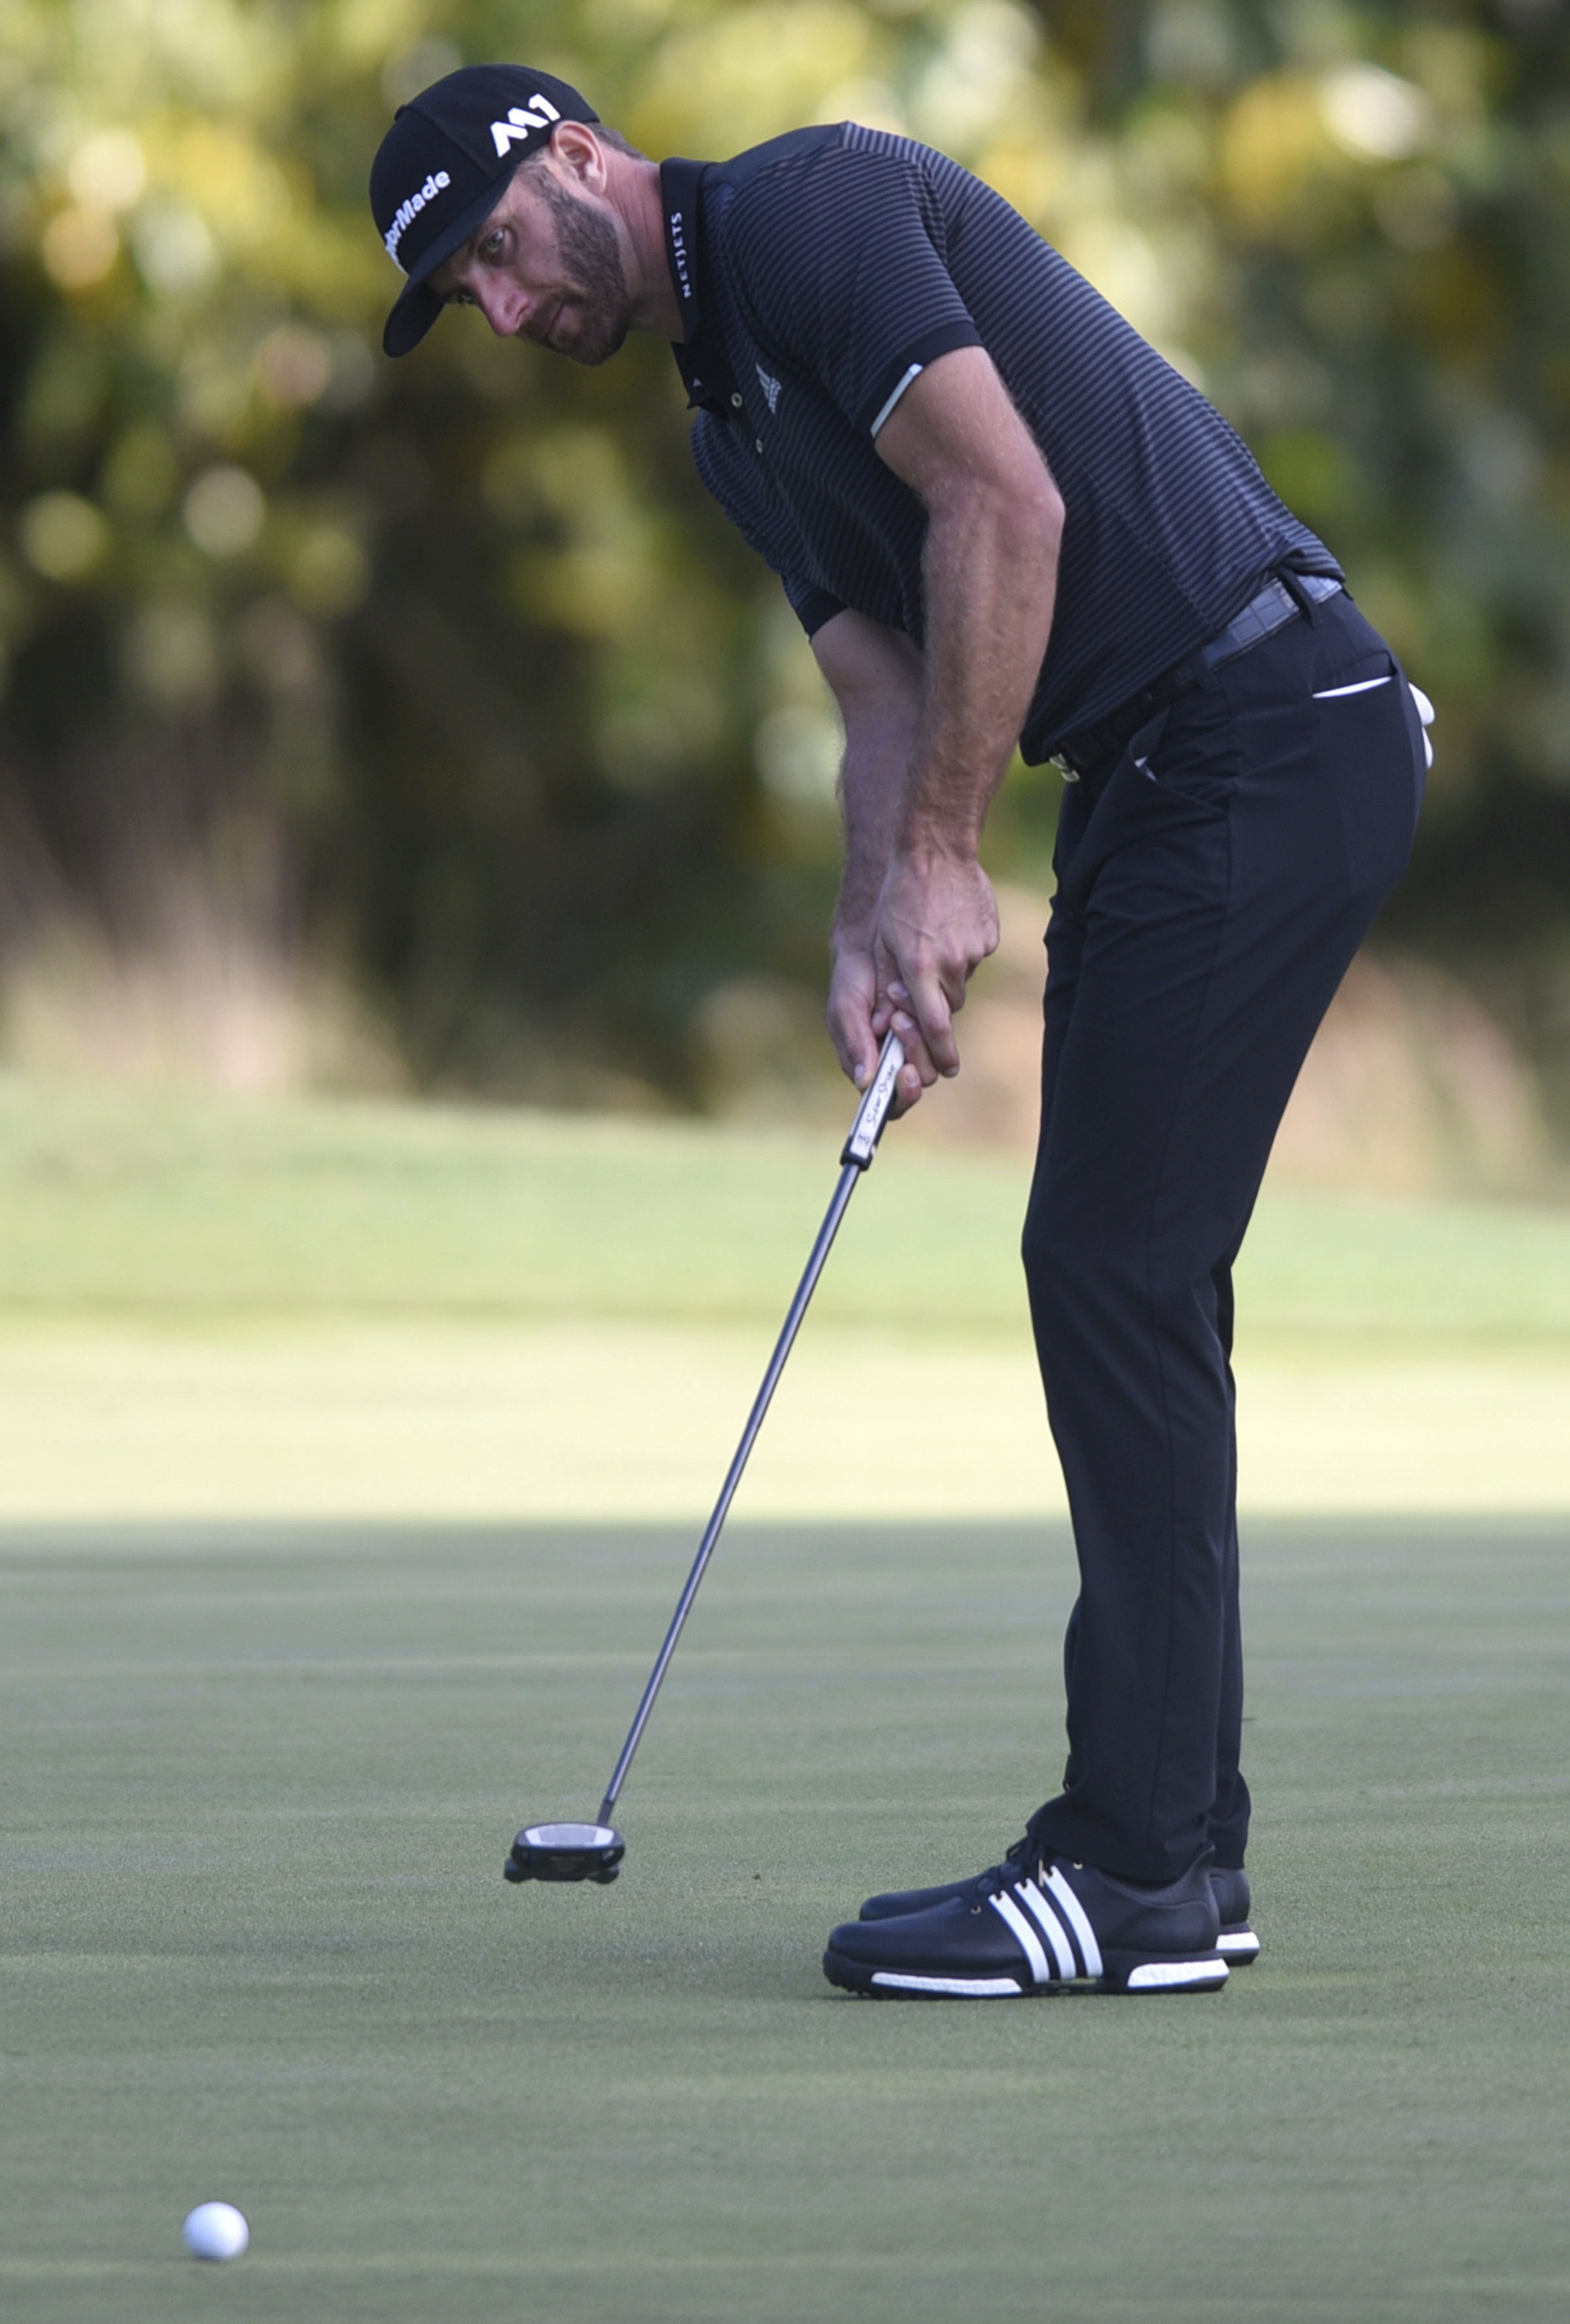 Dustin Johnson putts on the ninth green during the second round of the Wells Fargo Championship golf tournament at Eagle Point Golf Club in Wilmington, N.C., Friday, May 5, 2017. [Matt Born/The Star-News via AP)